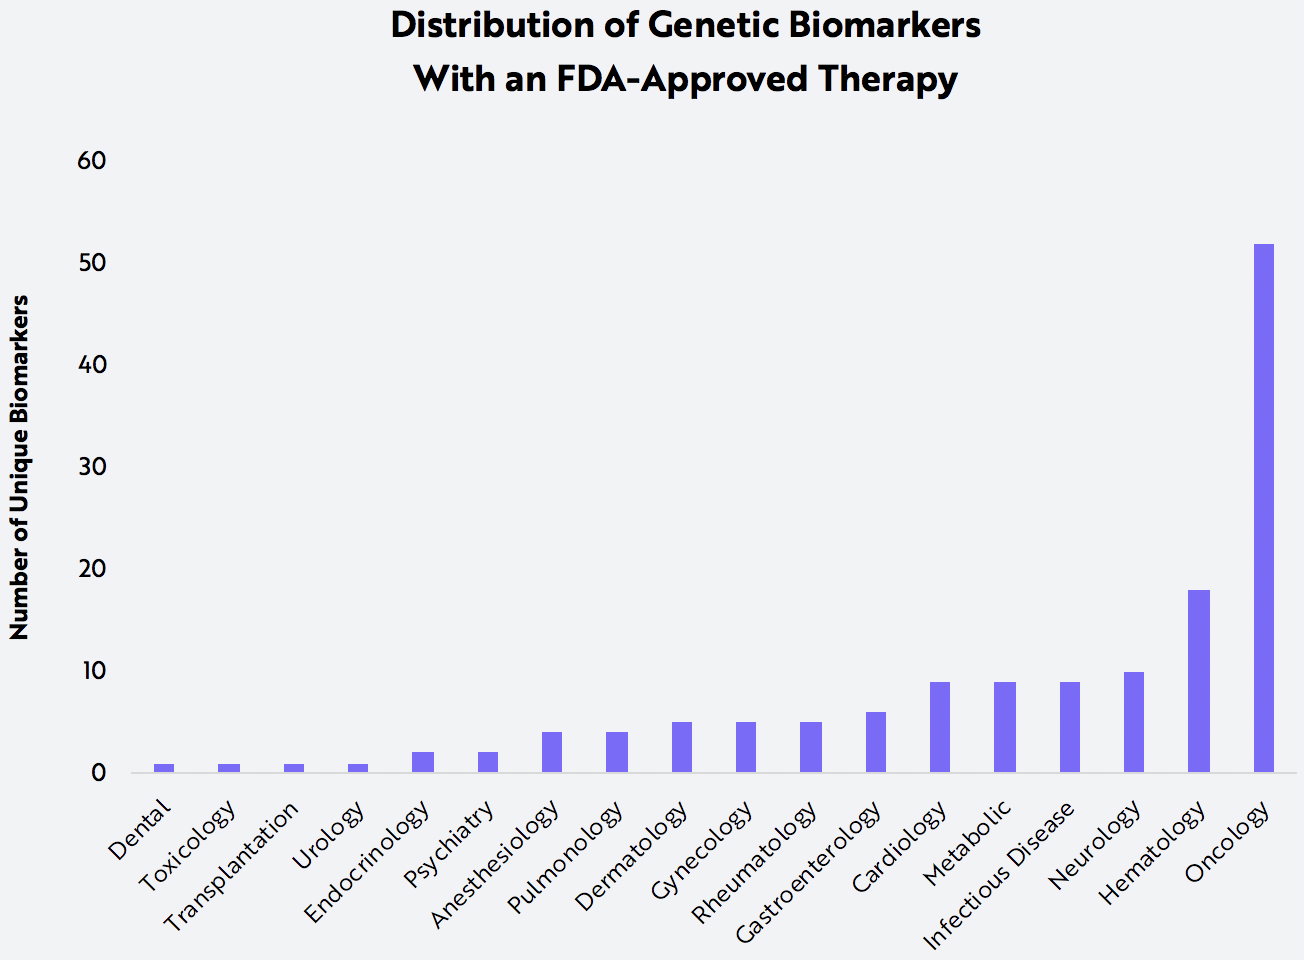 Genomic Biomarkers, oncology, FDA-approved therapy